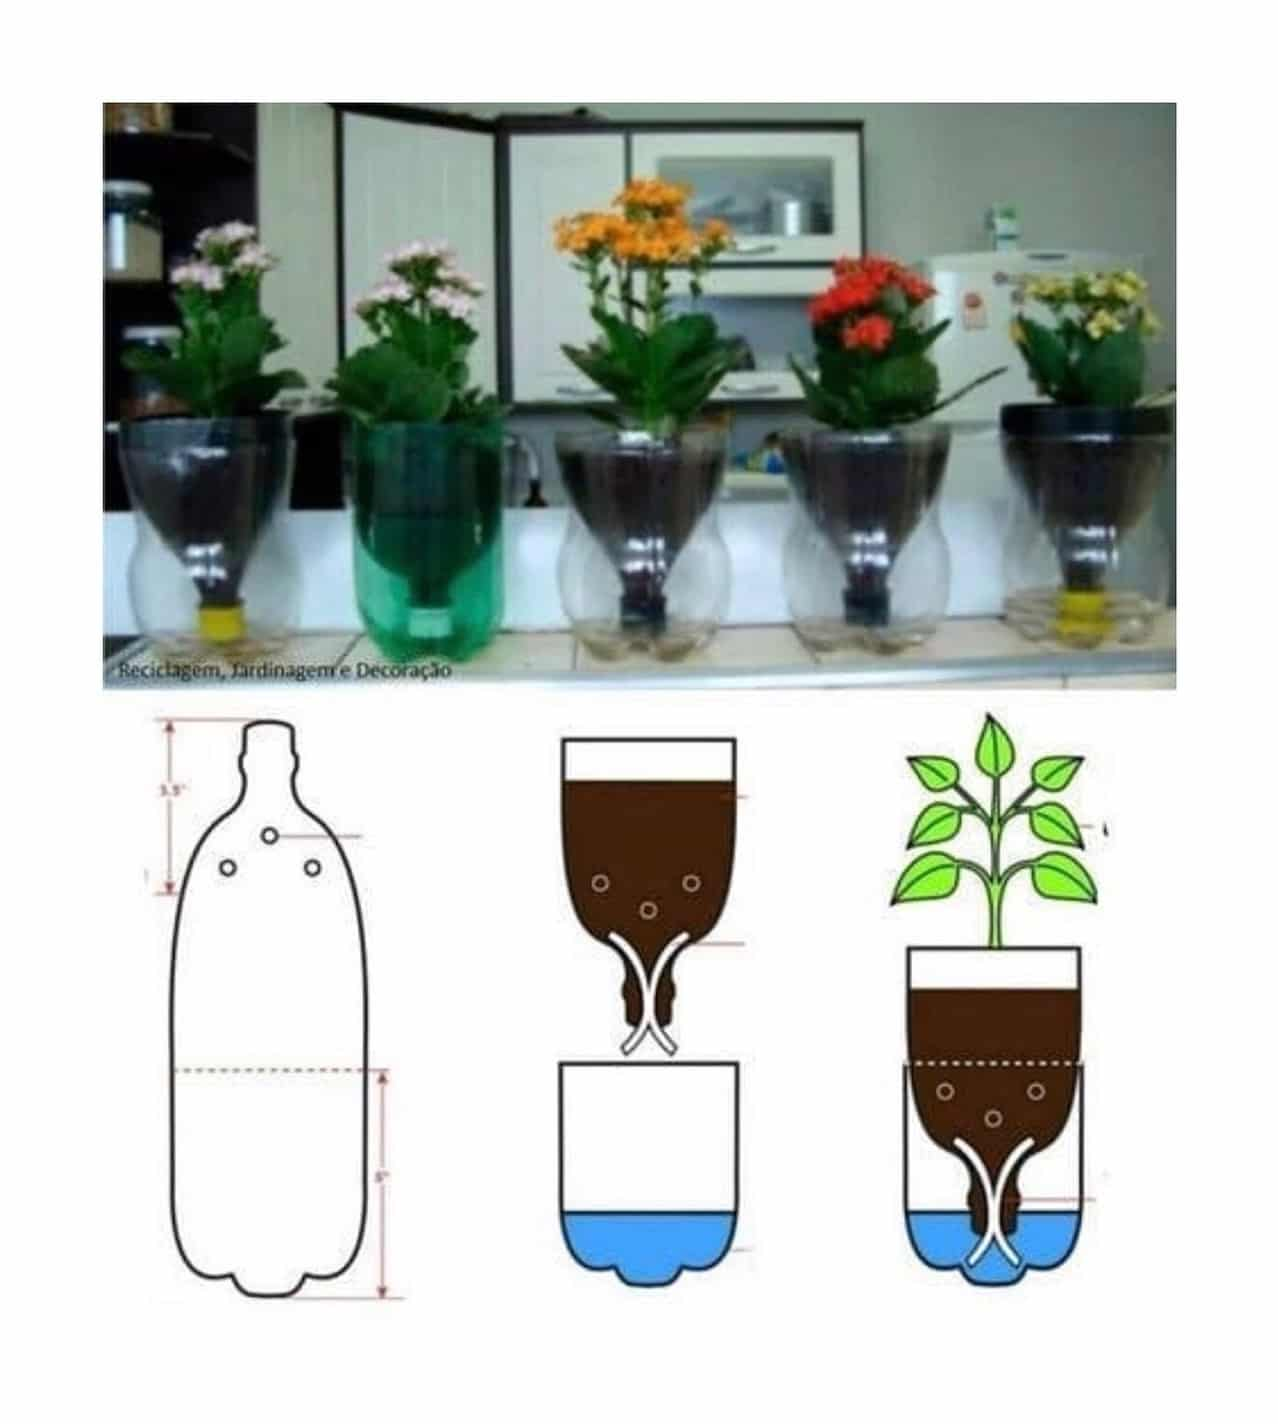 Automatic Plant Watering System - Seed starter smart diy watering planter